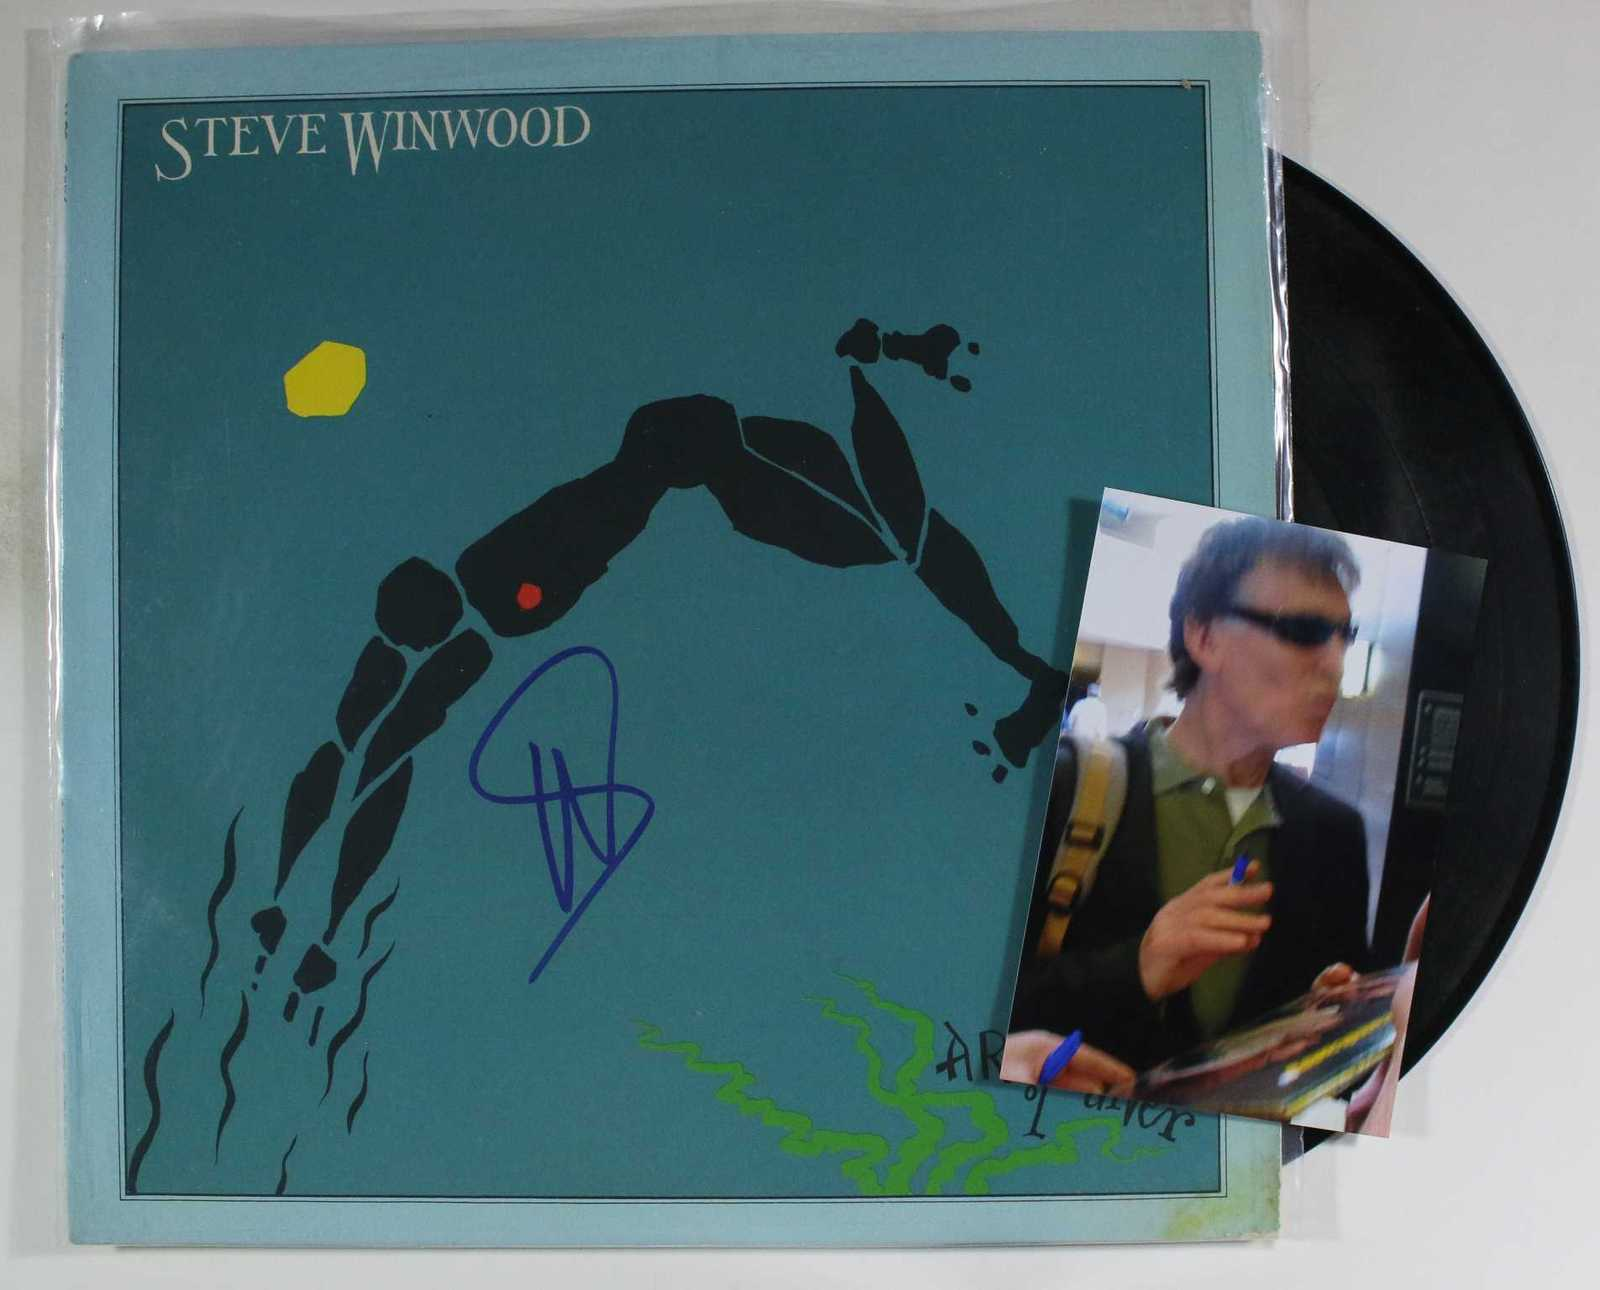 Primary image for Steve Winwood Signed Autographed Record Album w/ Proof Photo